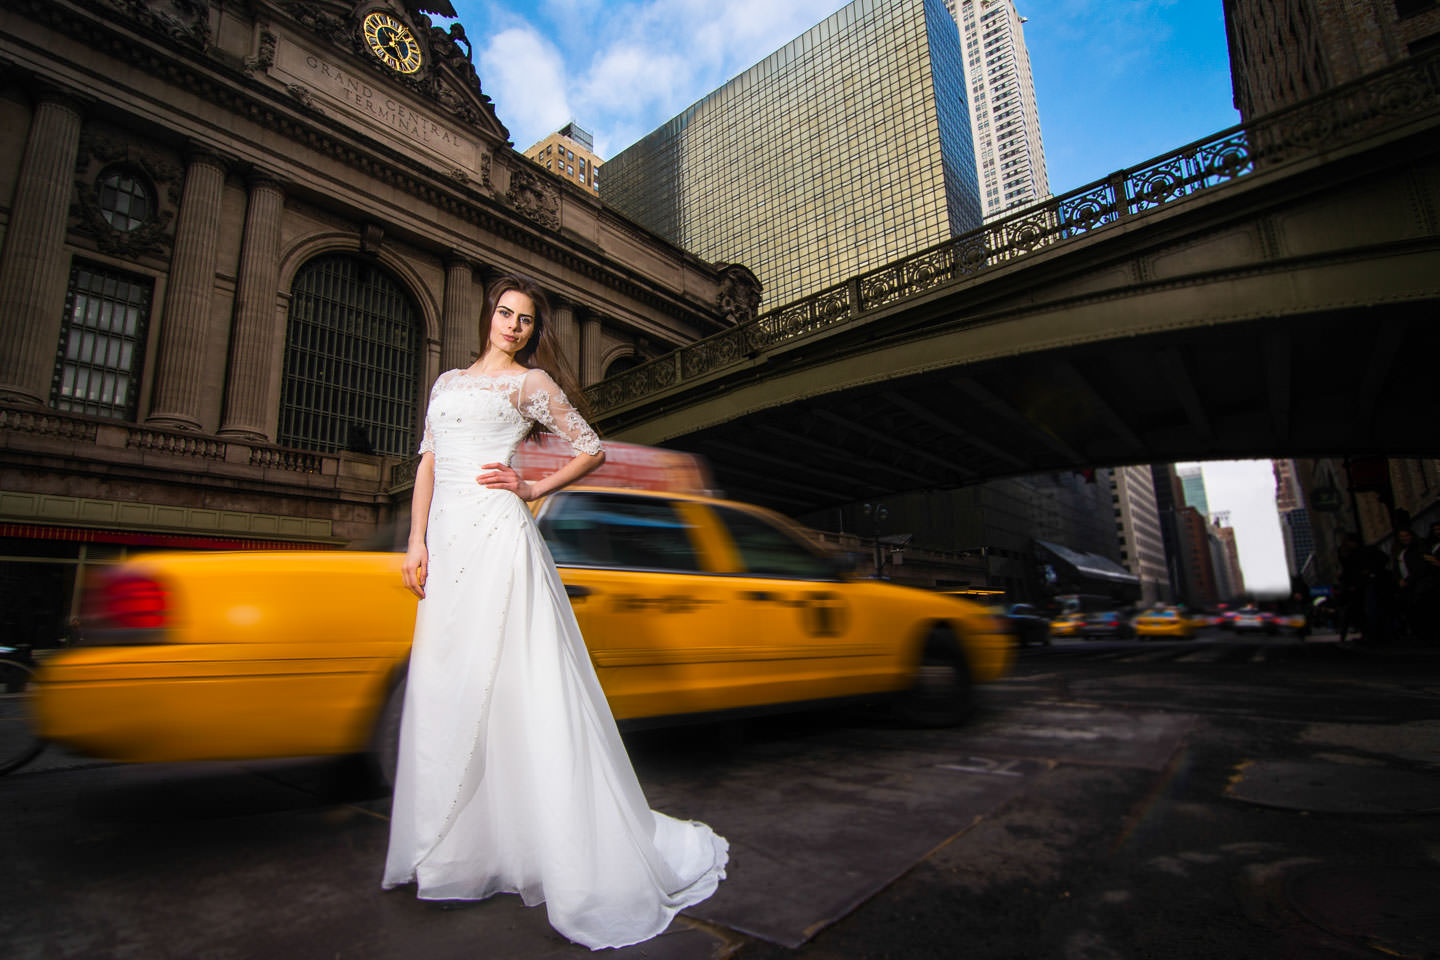 bride in front of yellow taxi by grand central station luxury high end wedding gown davids bridal